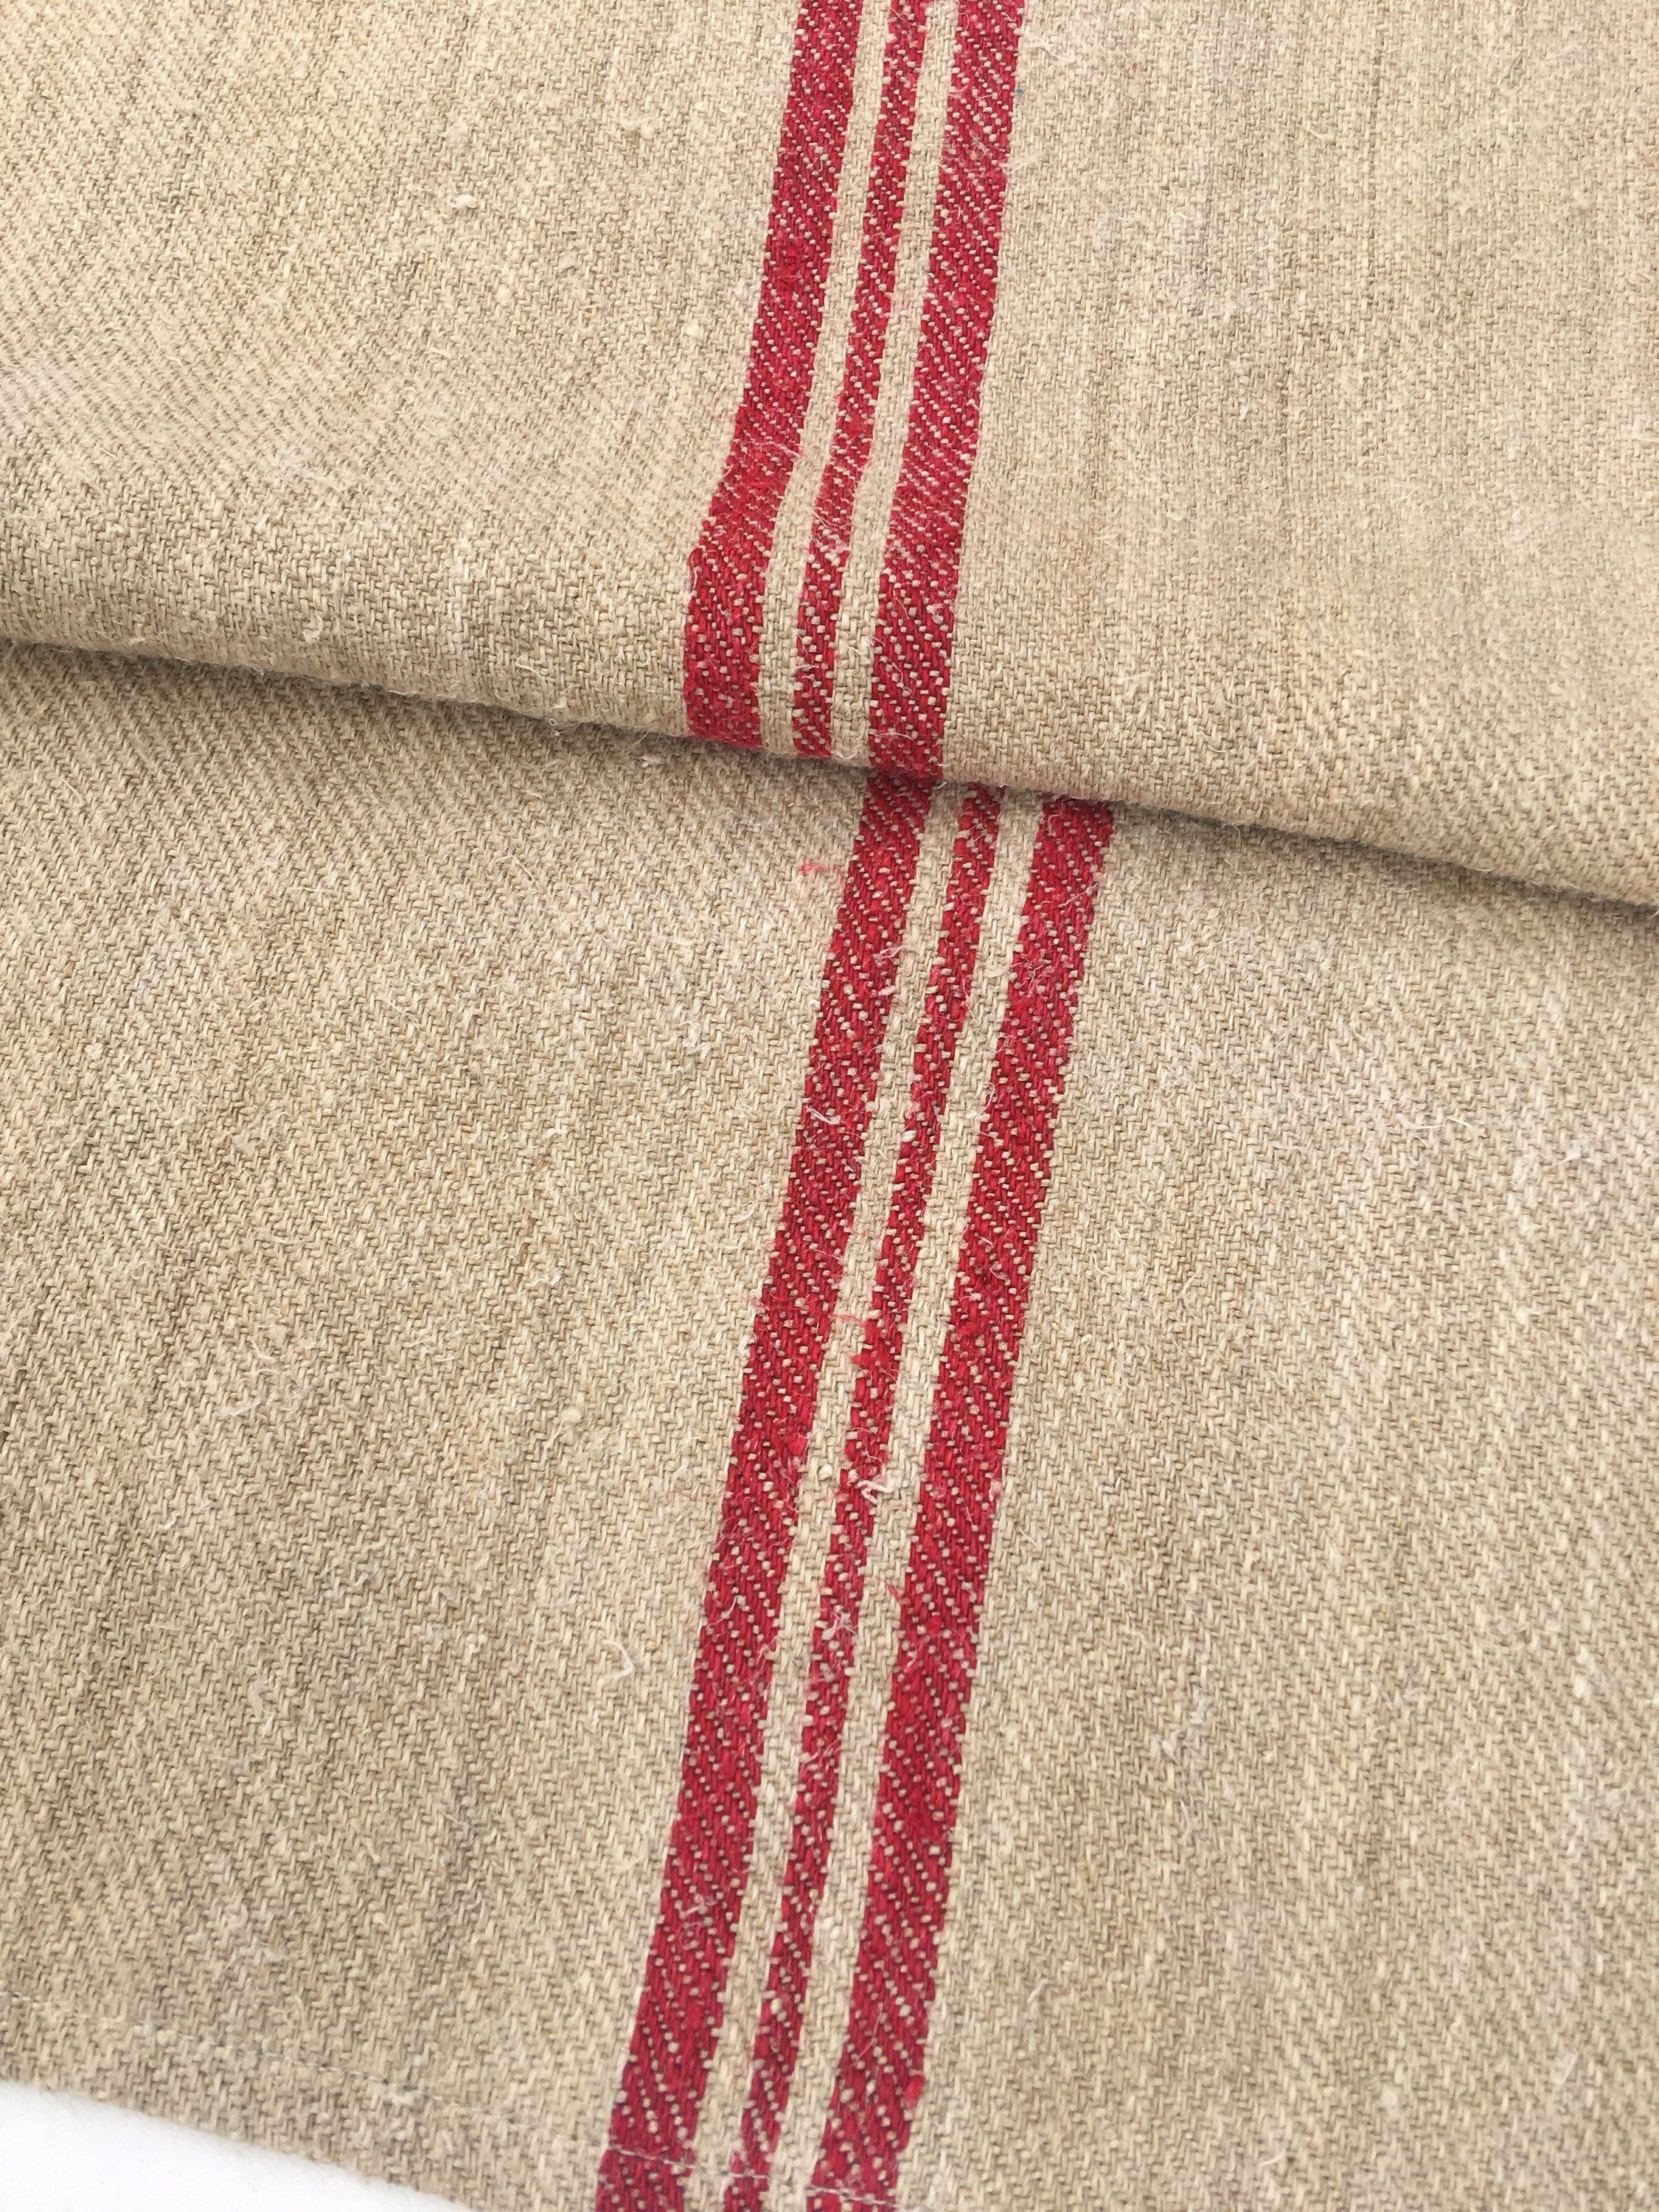 Antique European Hemp Grain Sack Beautiful Red Stripes with Blue//Green Stitching